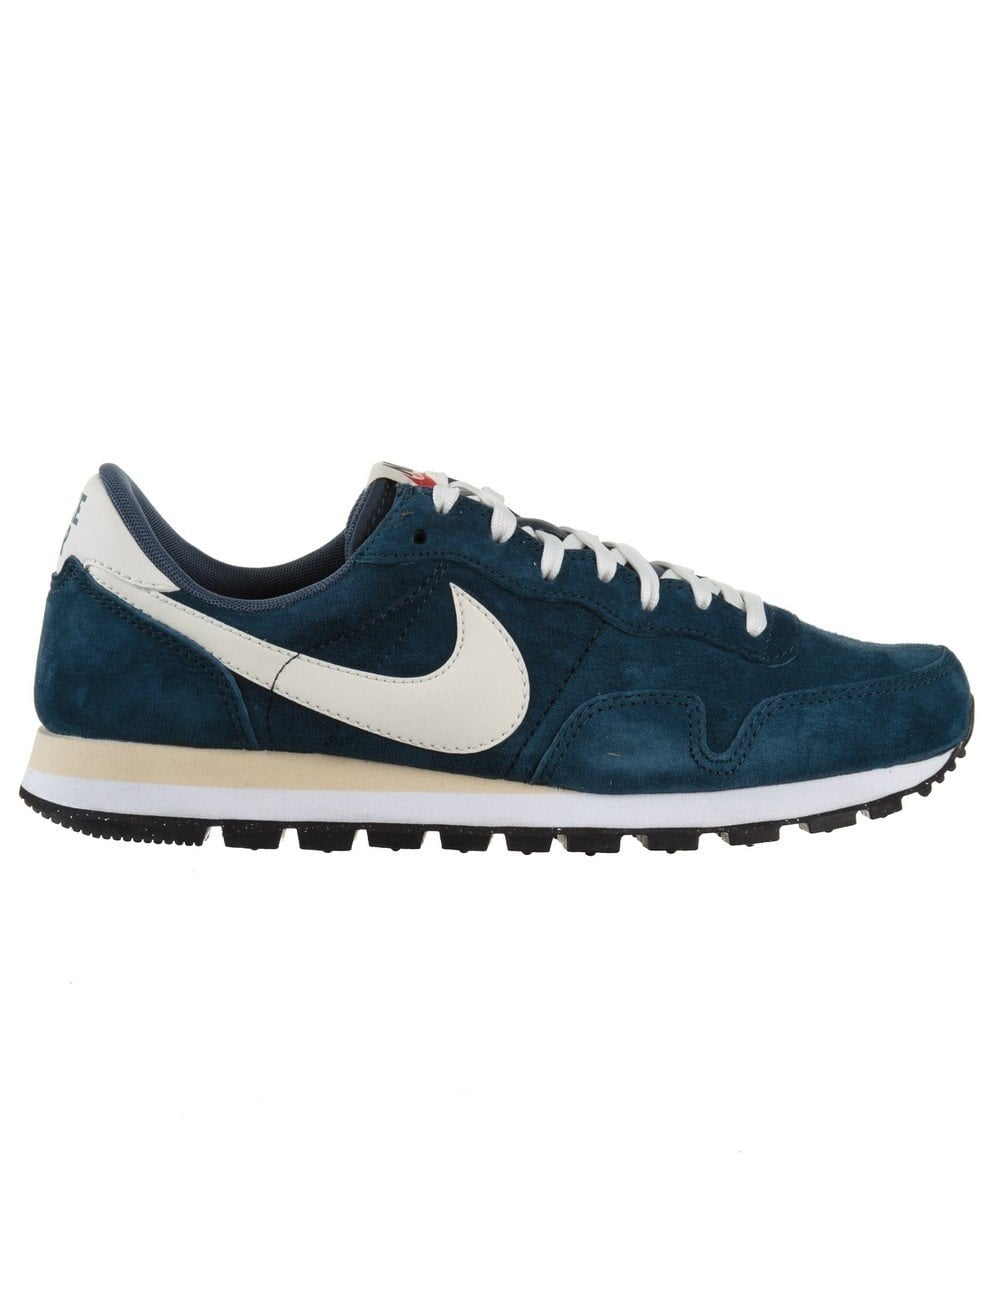 6cb7b0fa315 Nike Air Pegasus 83 PGS LTR Shoes - Squadron Blue - Footwear from ...